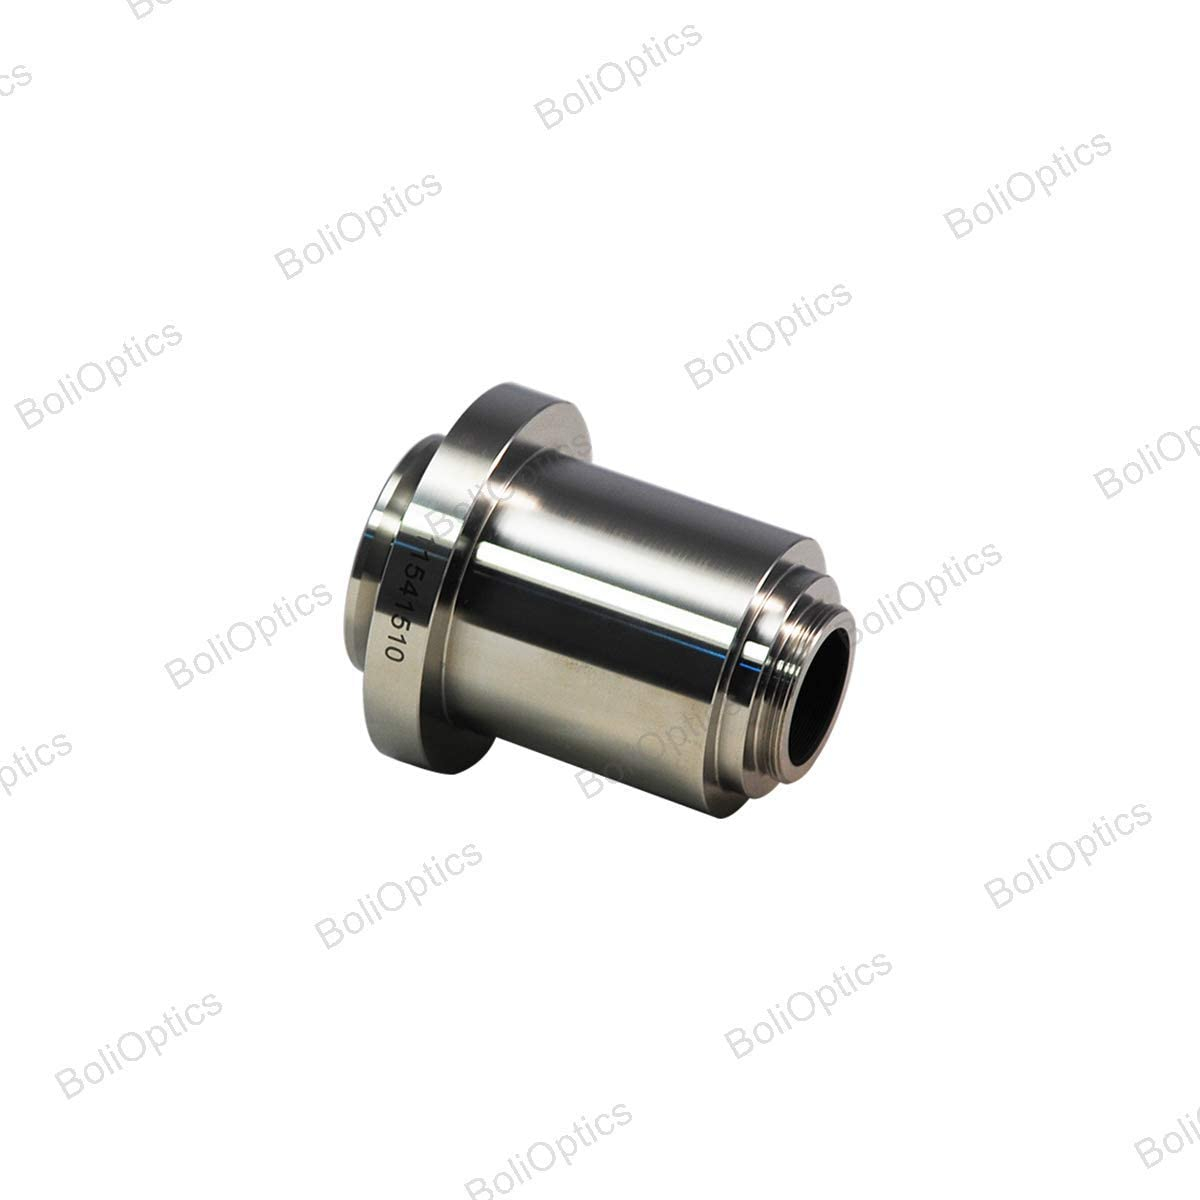 Leica Compatible 1X Microscope Camera Coupler C-Mount Adapter 34mm CP29521501